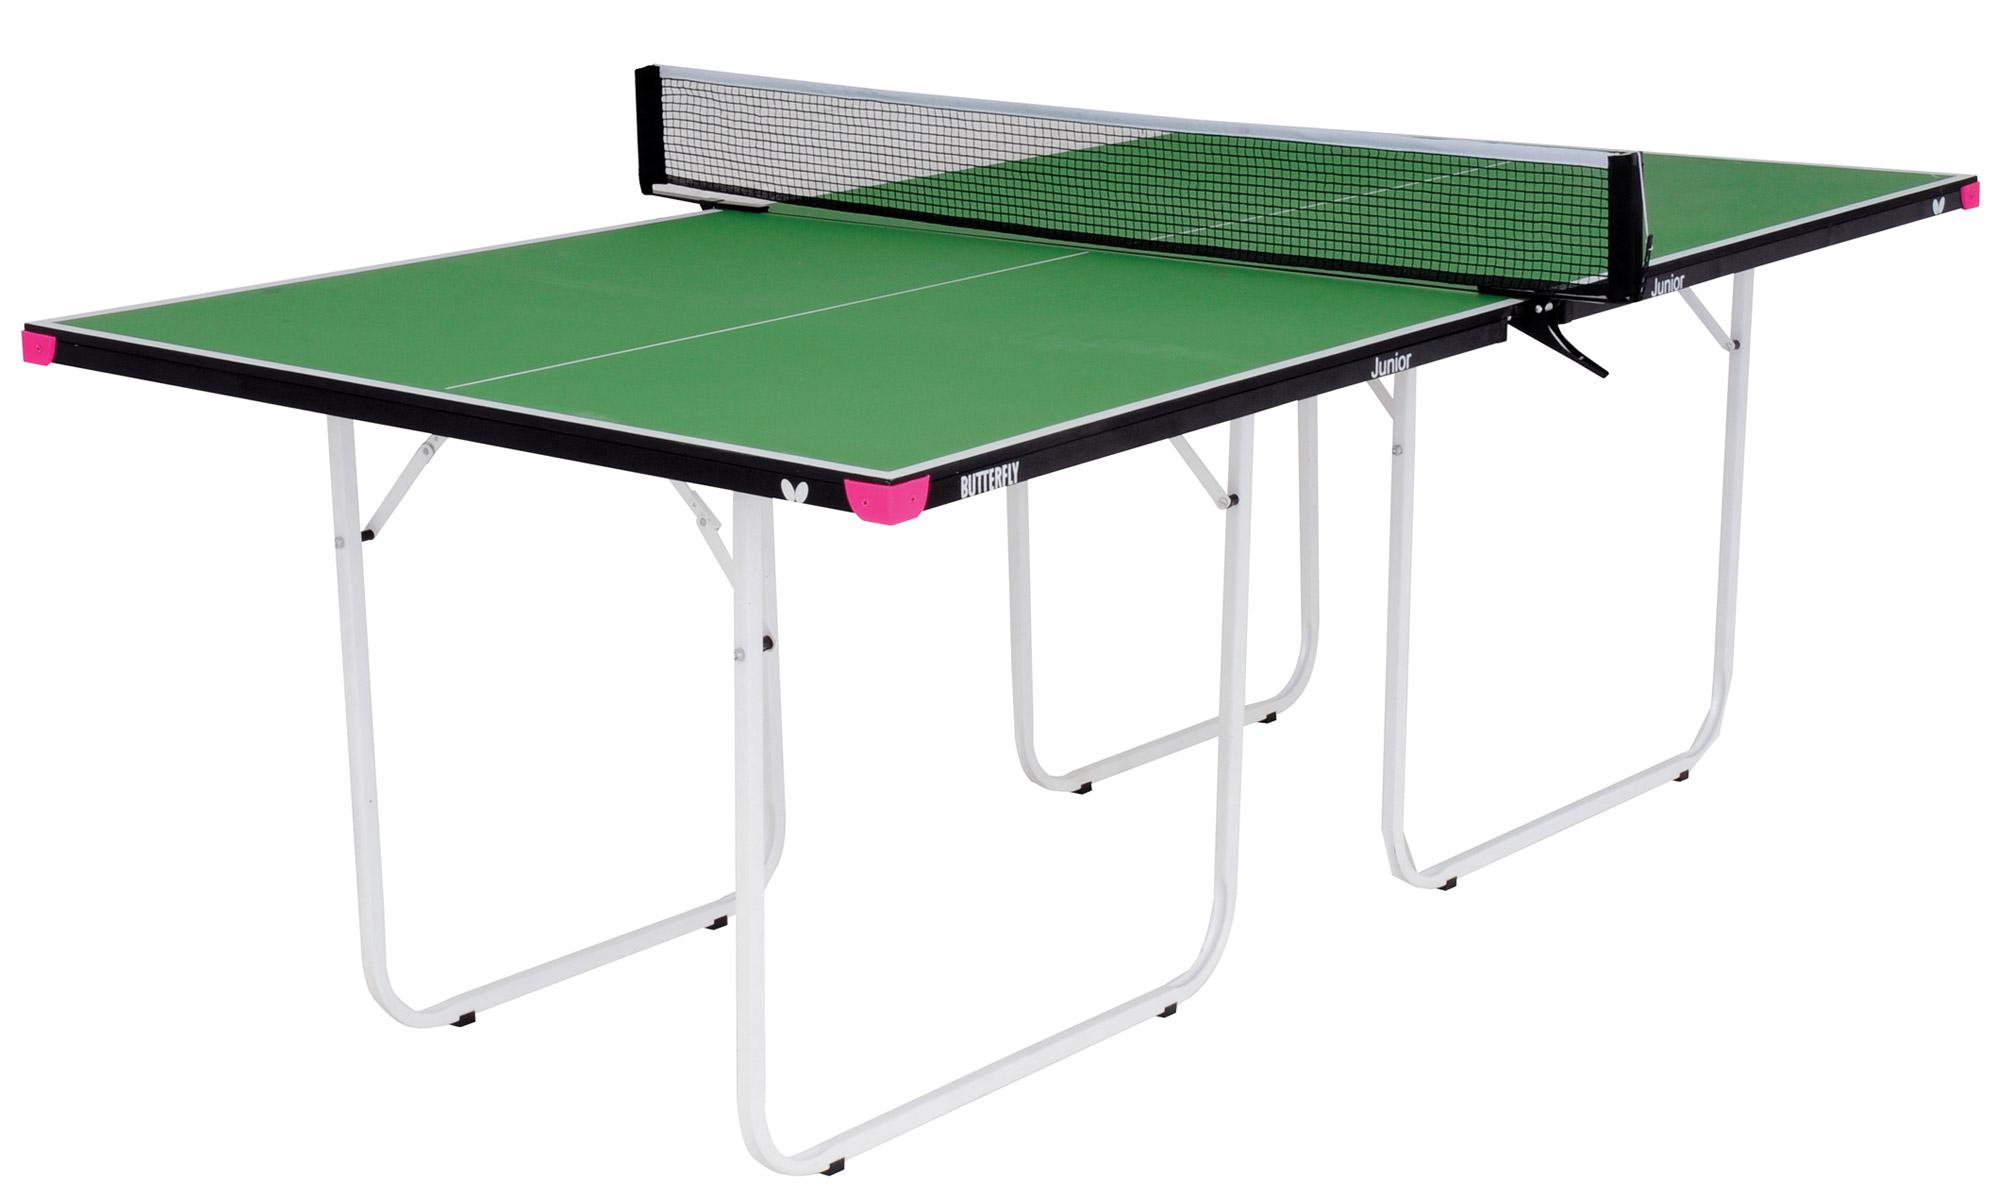 Butterfly junior 3 4 sized indoor table tennis table - Dimensions of a table tennis board ...